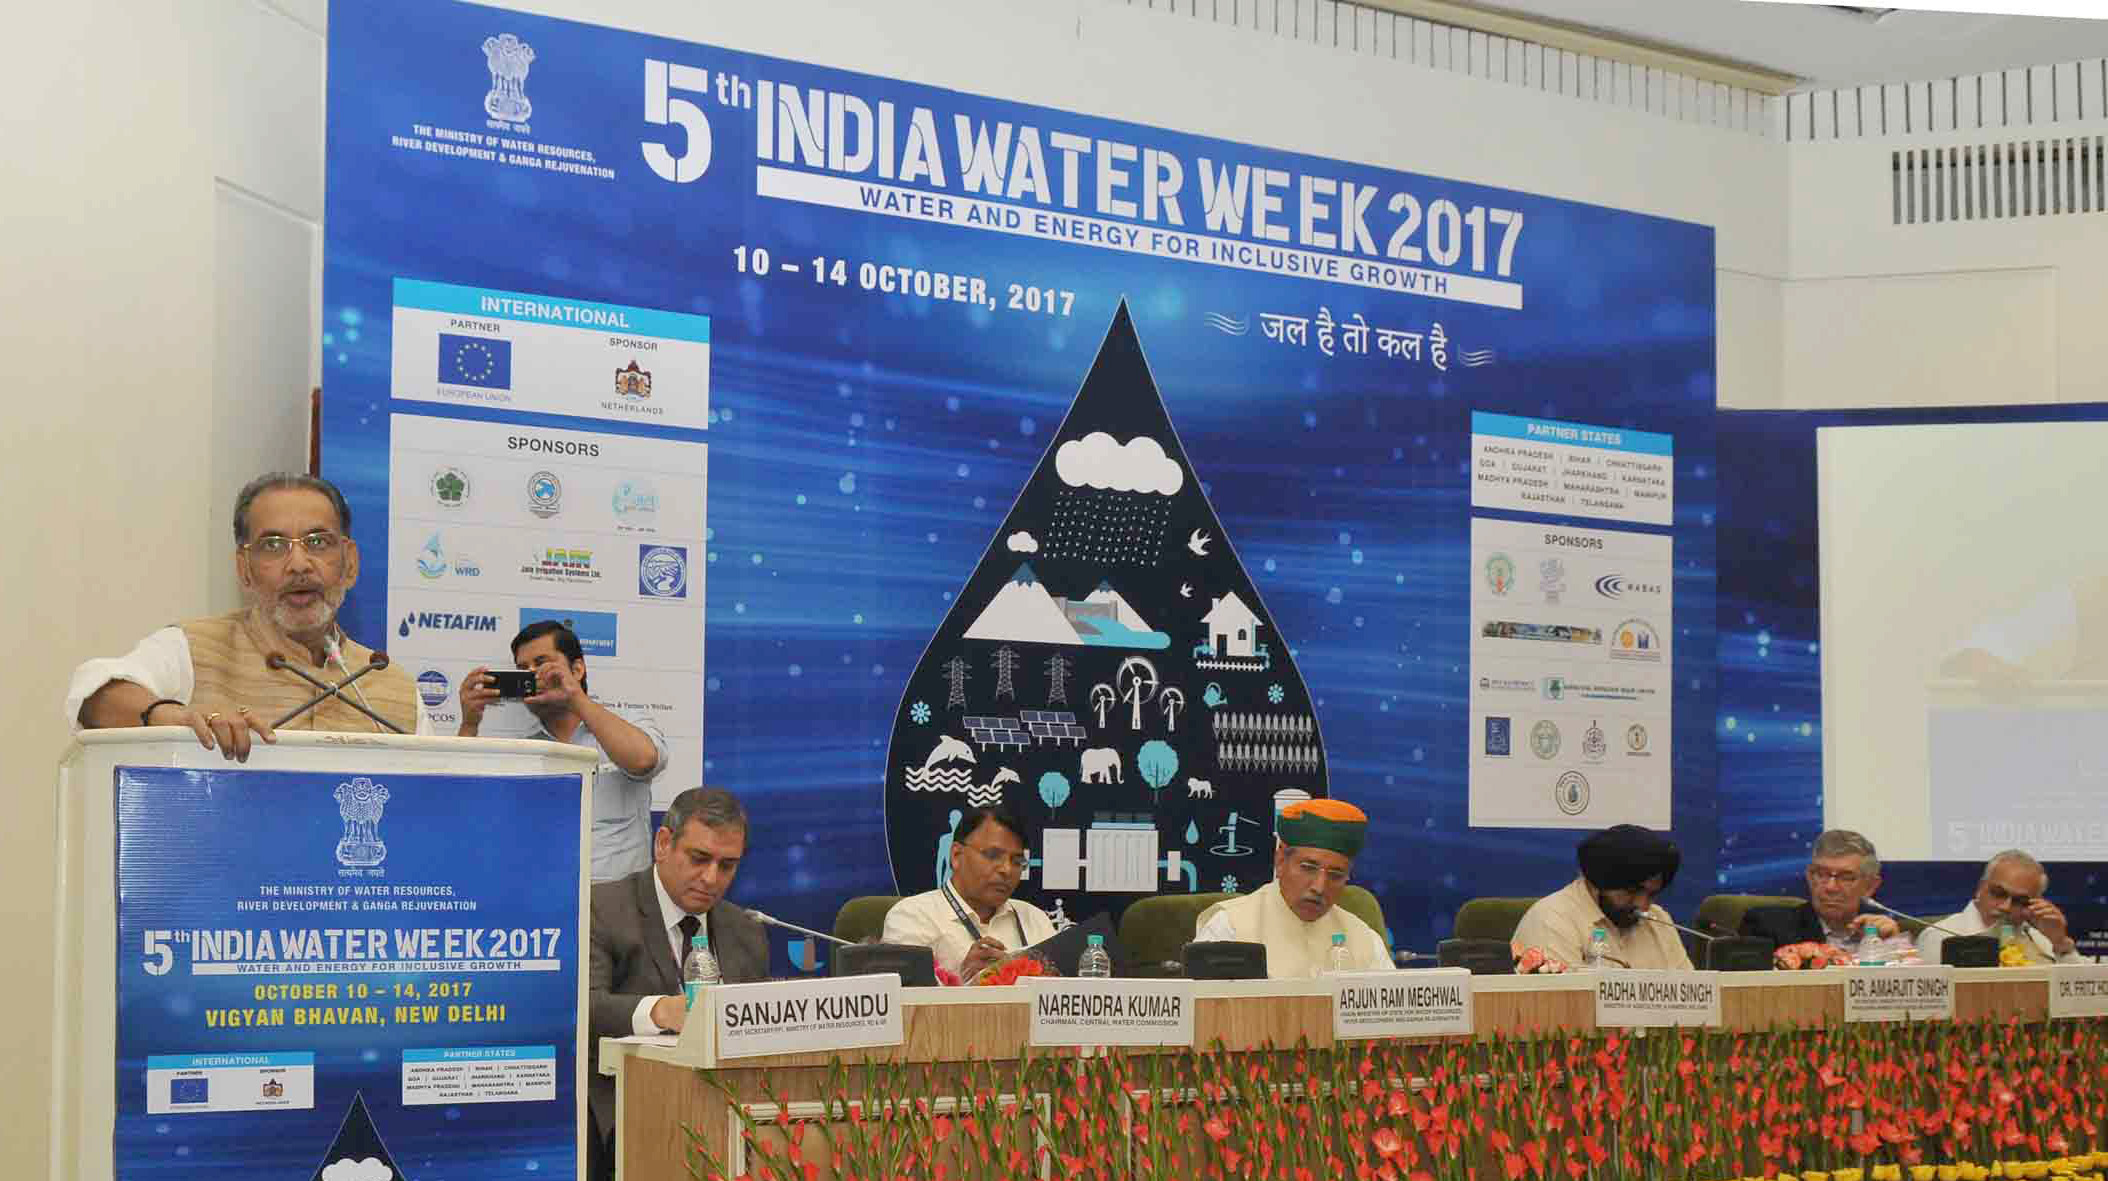 The Union Minister for Agriculture and Farmers Welfare, Shri Radha Mohan Singh addressing the Valedictory session of the India Water Week -2017, in New Delhi on October 14, 2017. The Minister of State for Parliamentary Affairs, Water Resources, River Development and Ganga Rejuvenation, Shri Arjun Ram Meghwal and other dignitaries also seen.